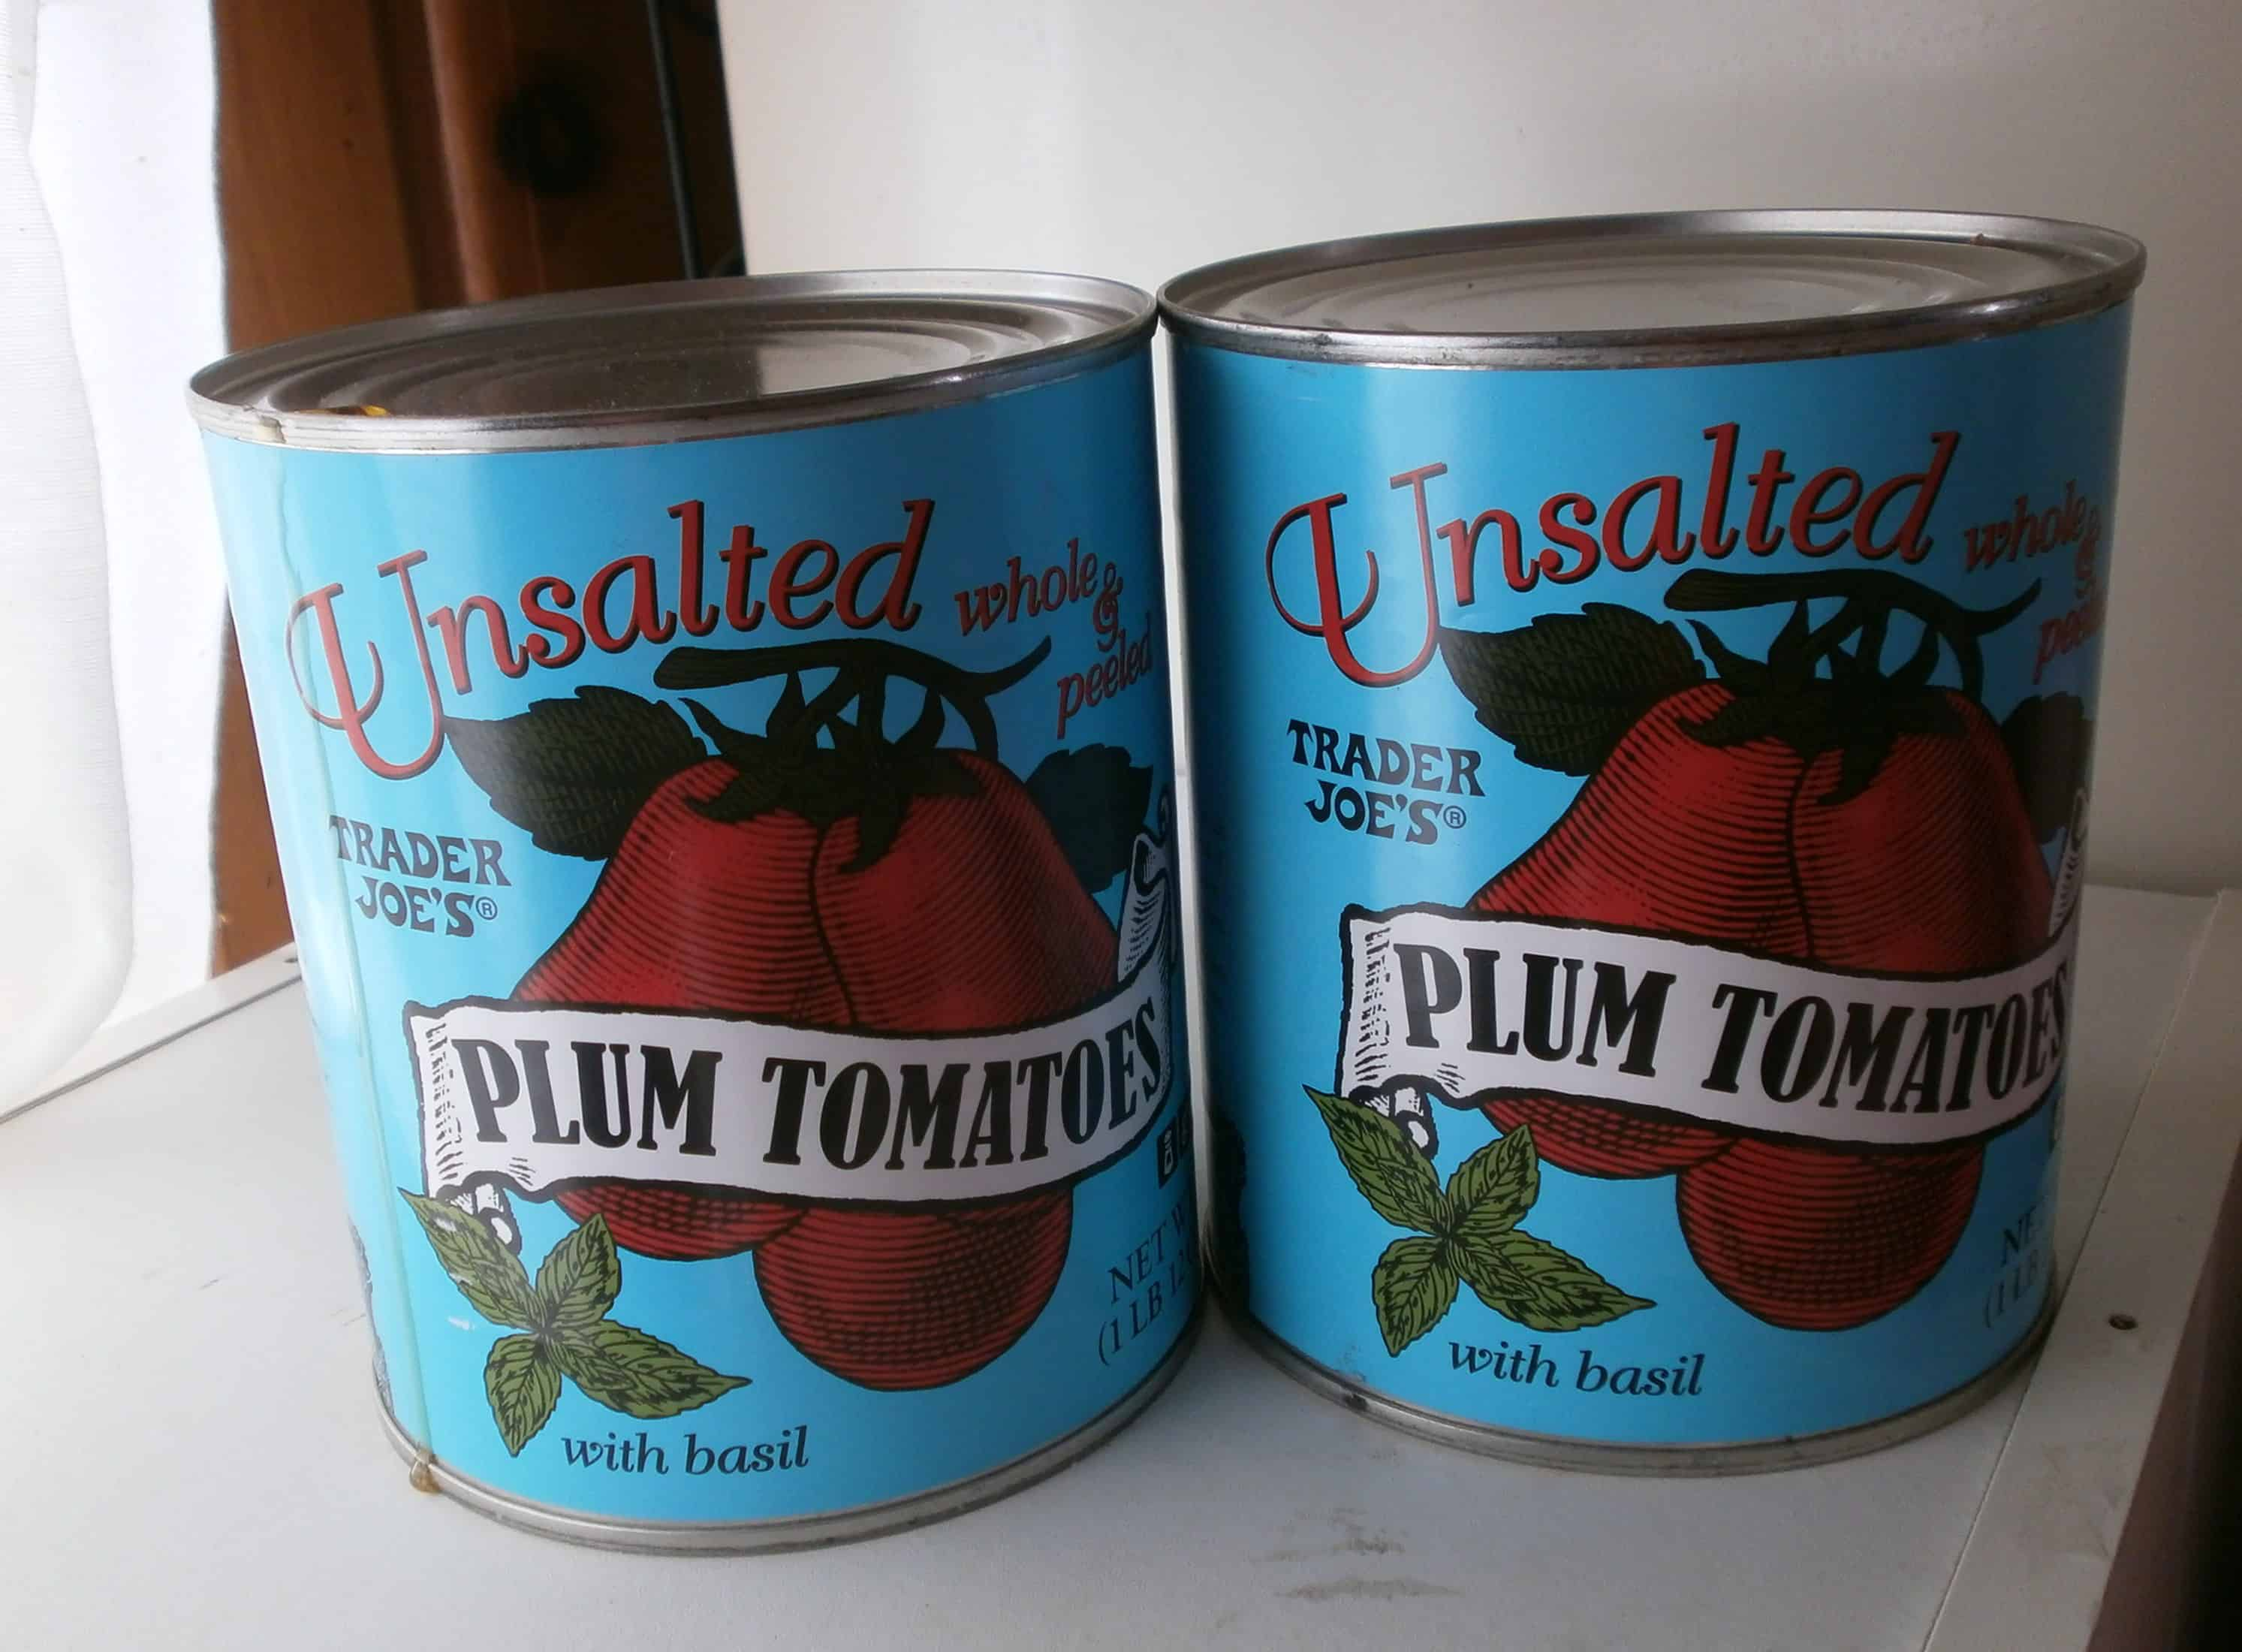 how to make tomato sauce from canned plum tomatoes